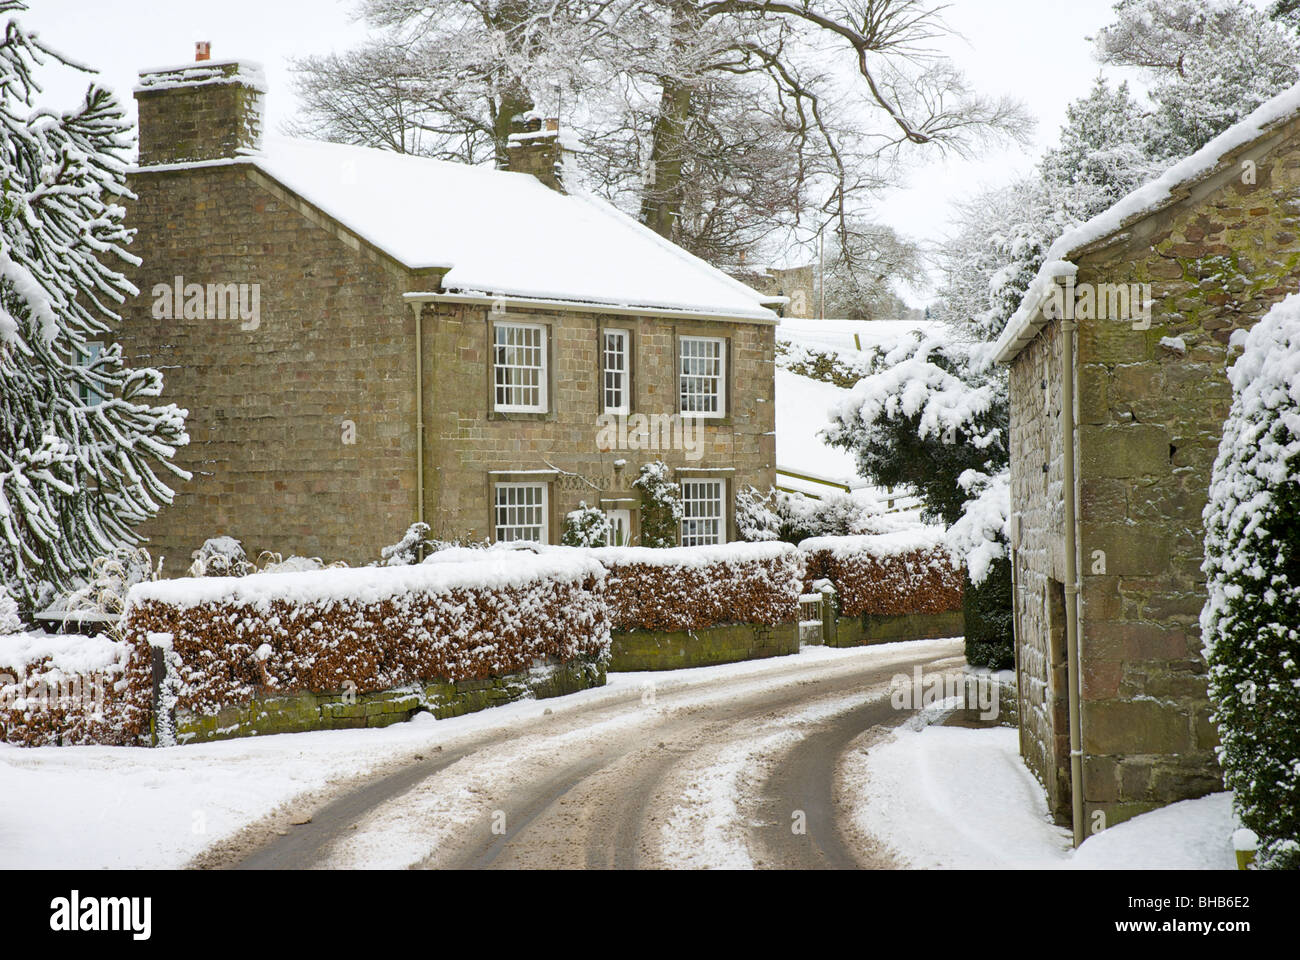 Snowy cottages in the village of Bolton Abbey, Wharfedale, North Yorkshire, England UK - Stock Image